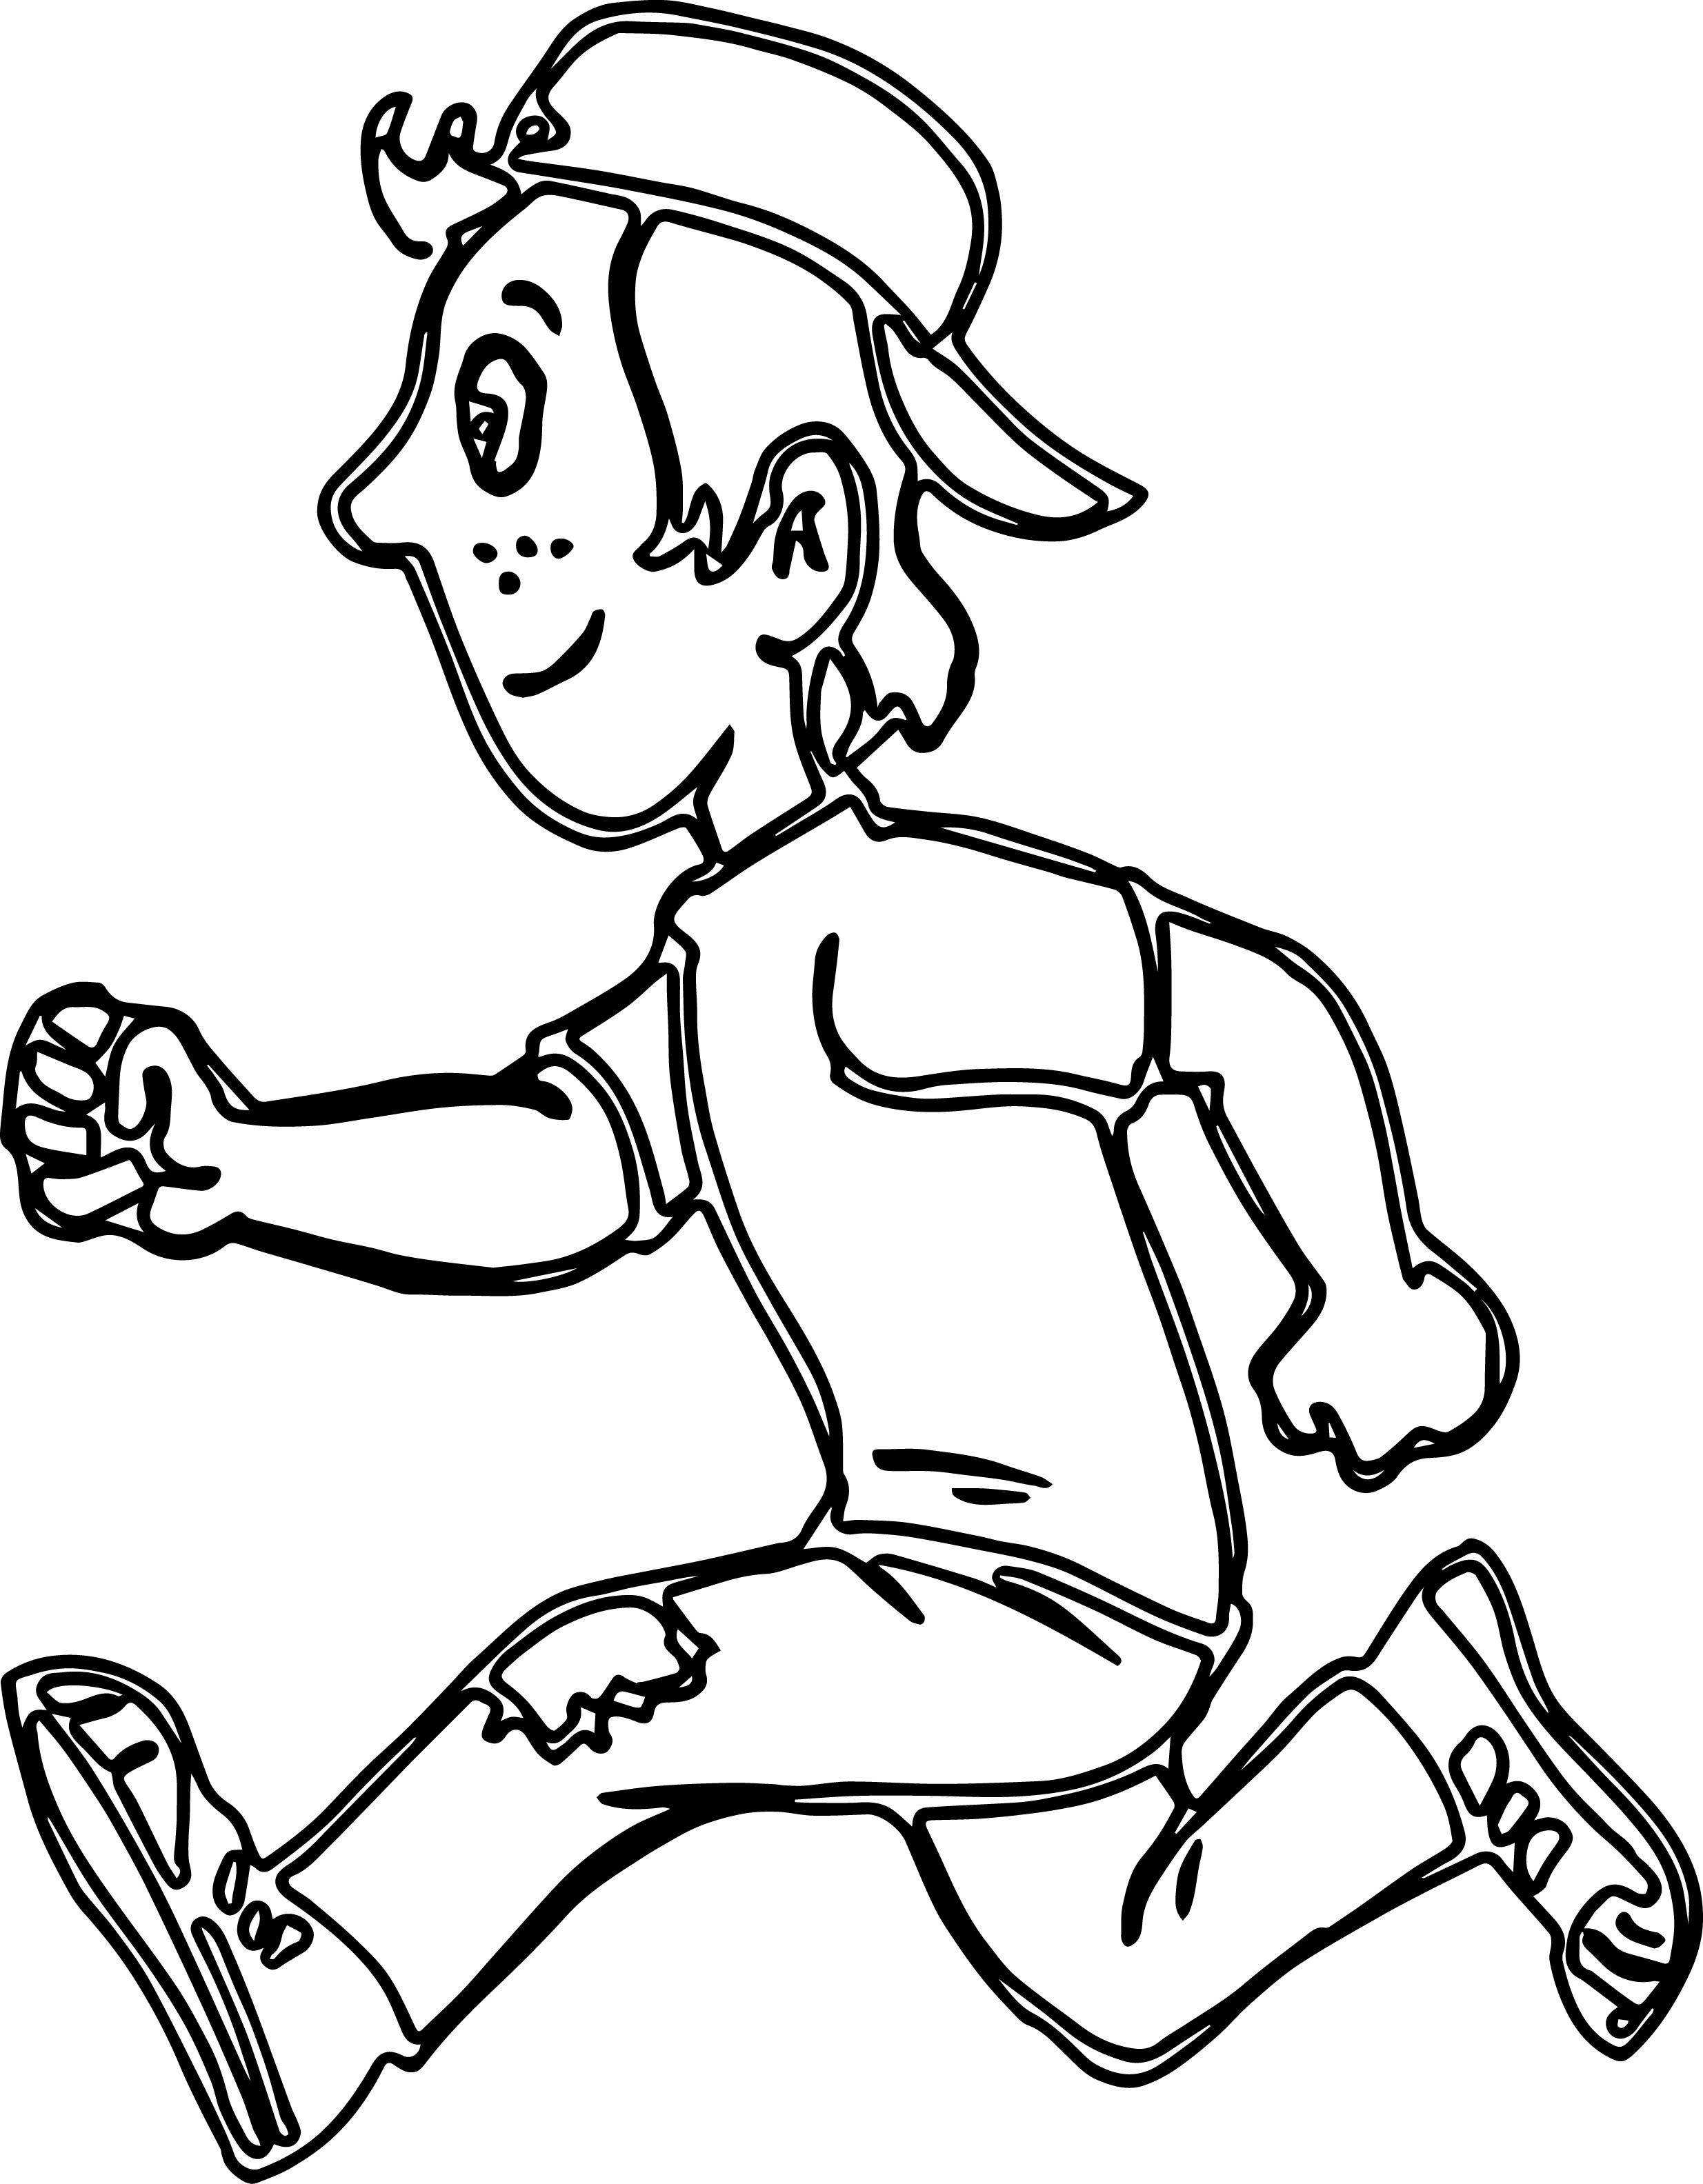 Awesome Running Boy Coloring Pages Verbos